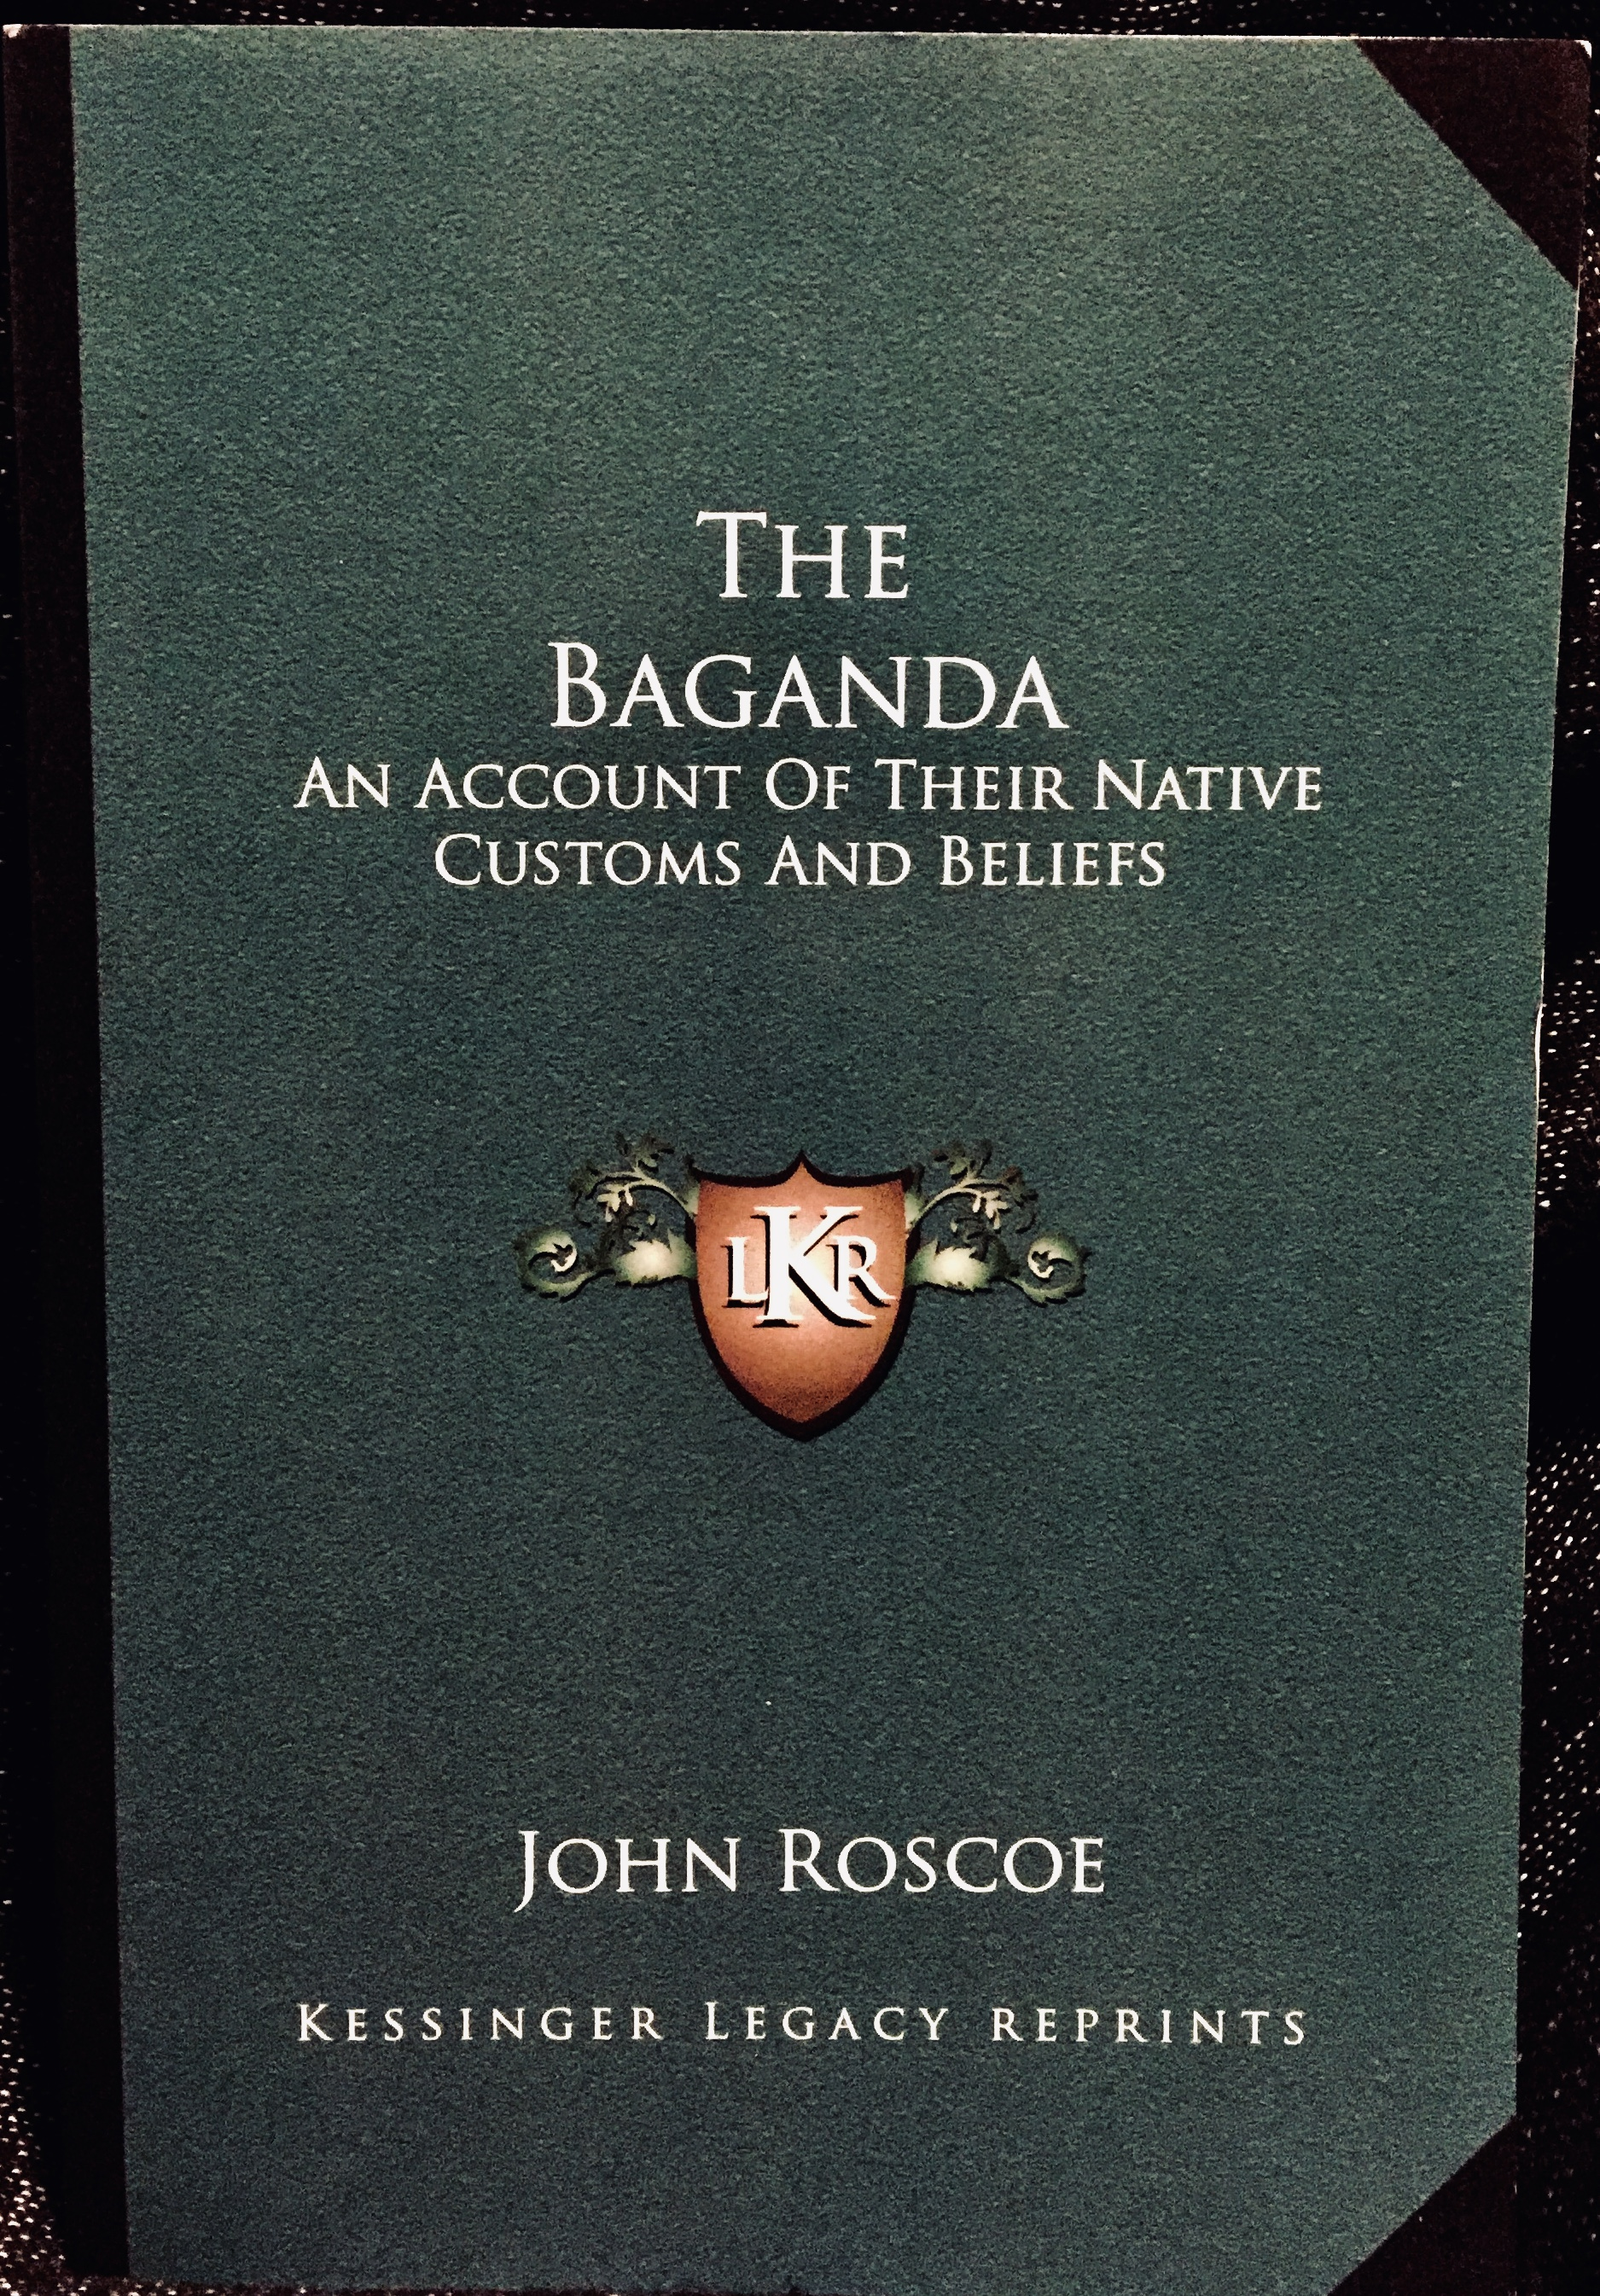 The Baganda: An Account of Their Native Customs and Beliefs  – By Rev. John Roscoe (1911)